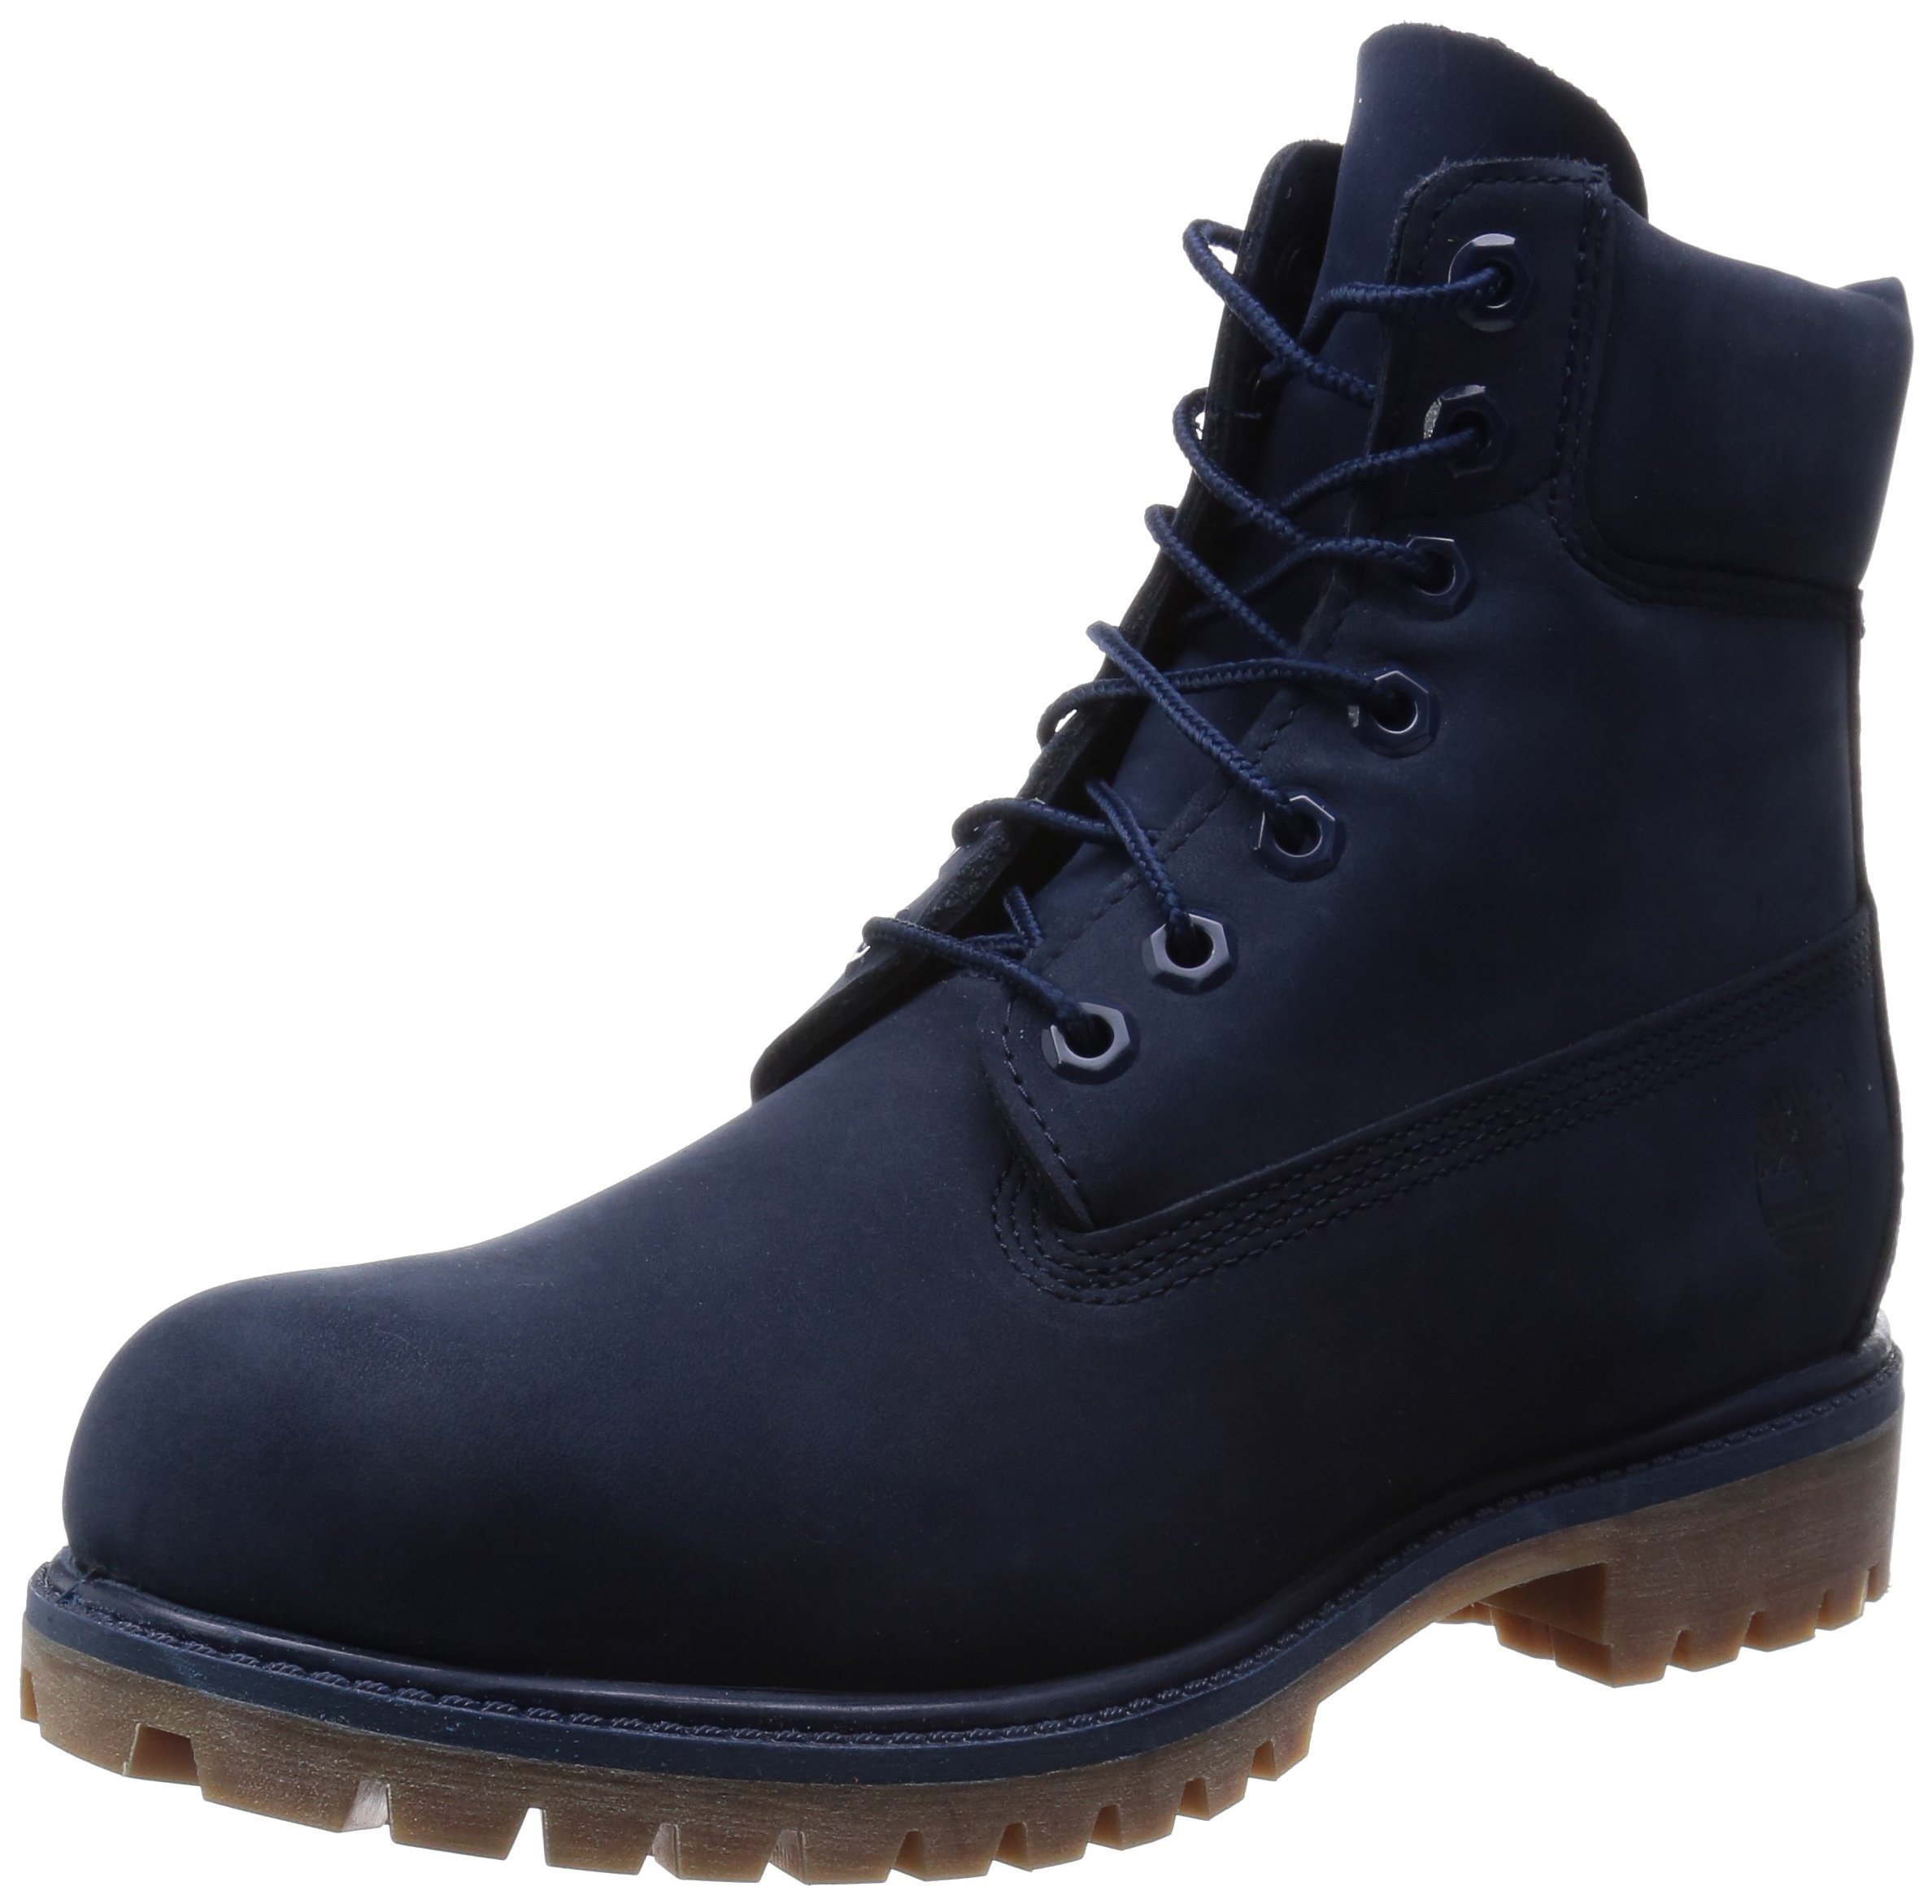 Timberland(ティンバーランド) TIMBERLAND ICON 6'' Premium Boot